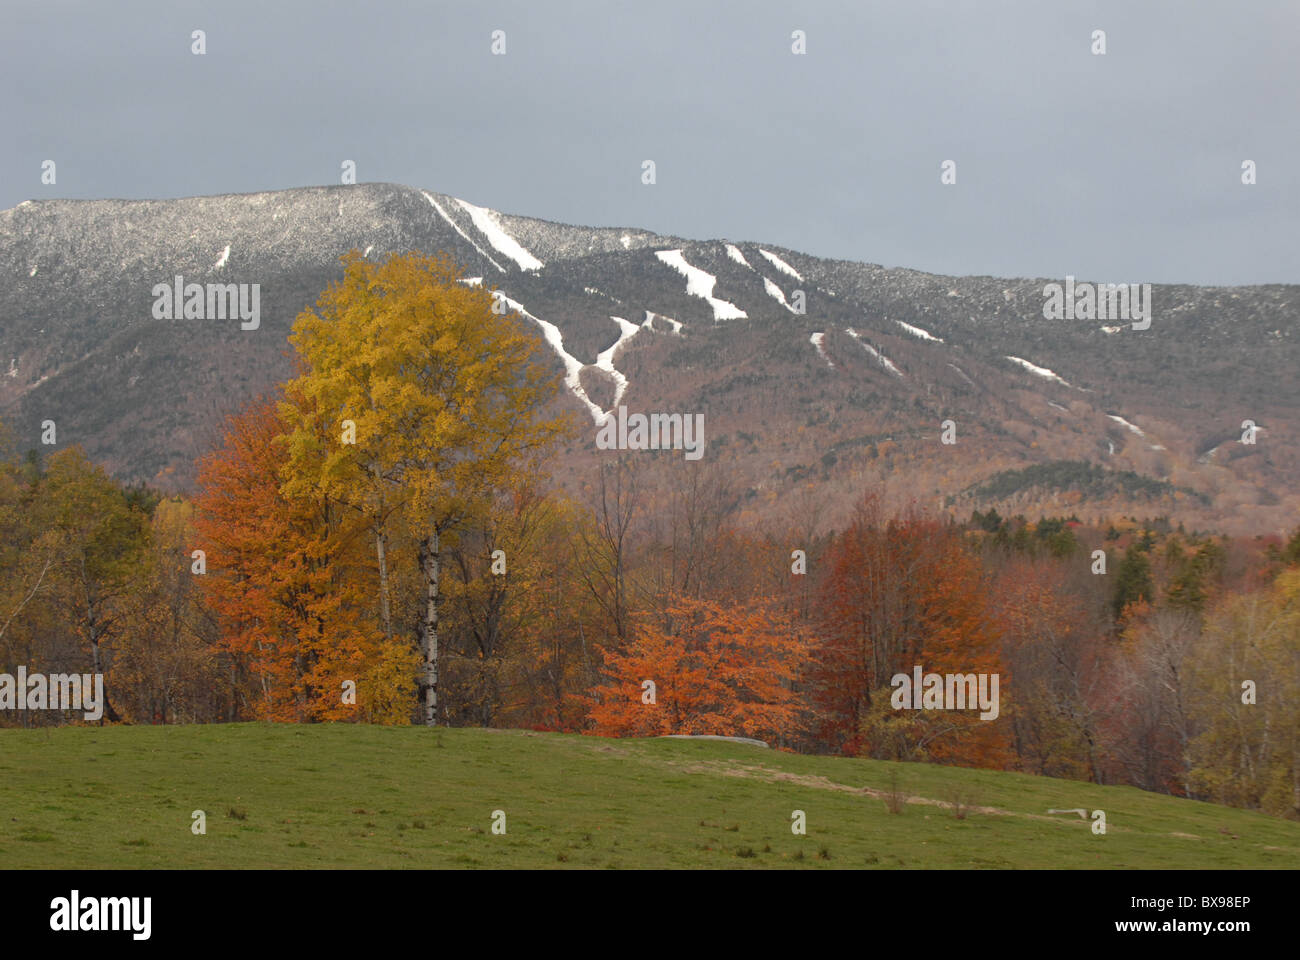 Snow covers the trails of Mt. Ellen at Sugarbush Resort in Fayston, VT during fall in Vermont. - Stock Image